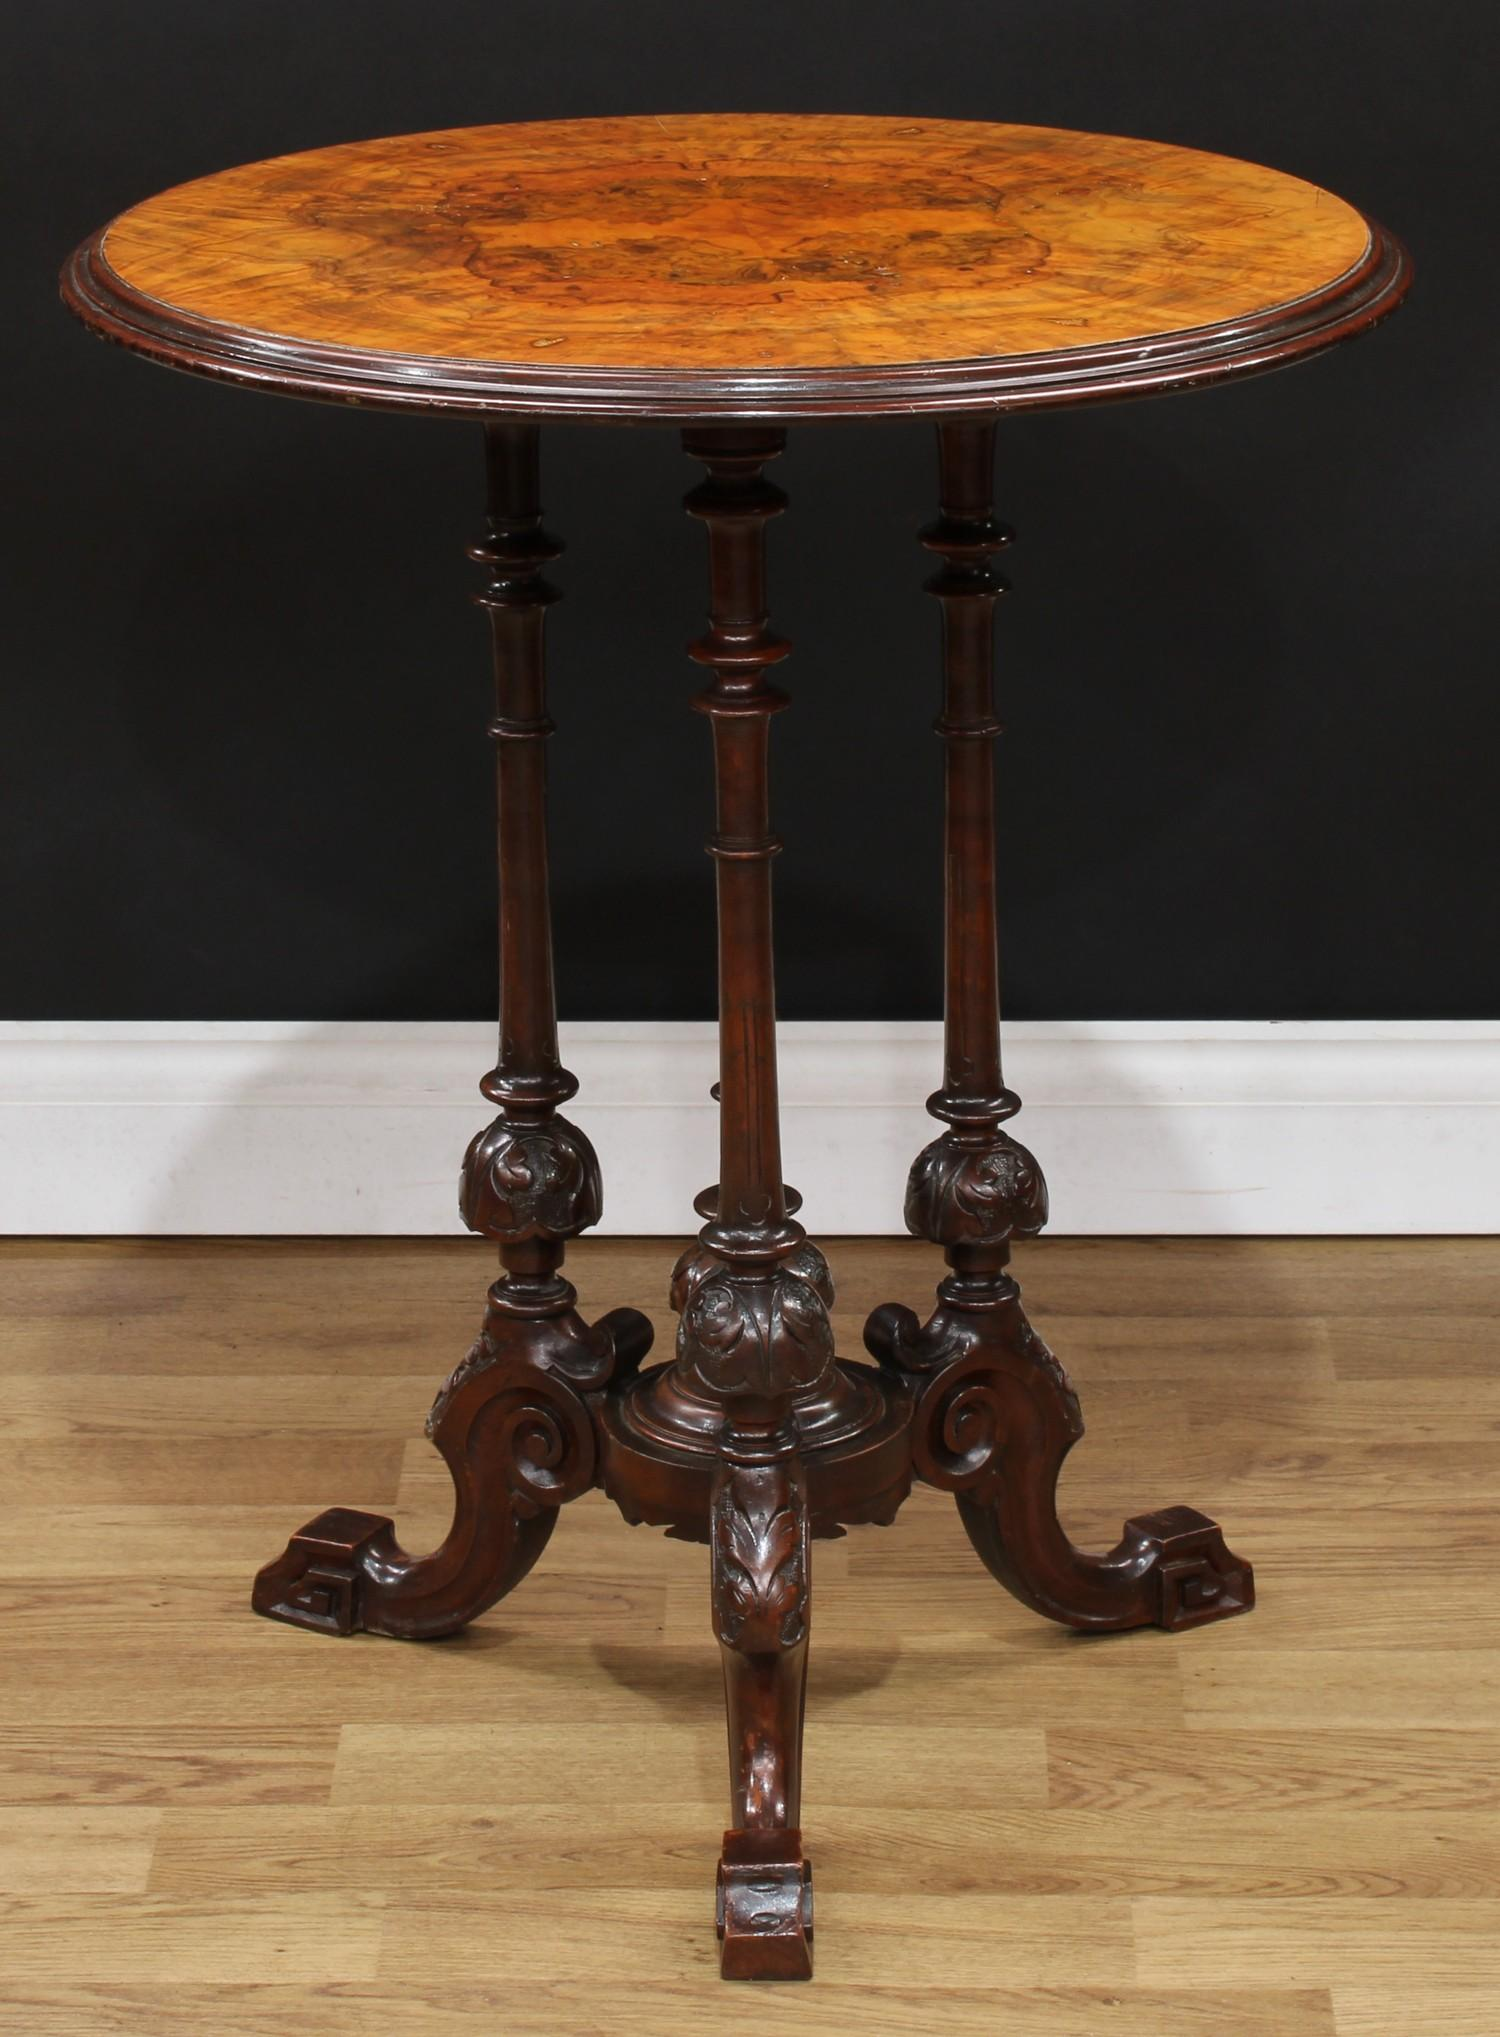 A Victorian walnut and mahogany wine table, quarter-veneered circular top with moulded edge, - Image 3 of 3